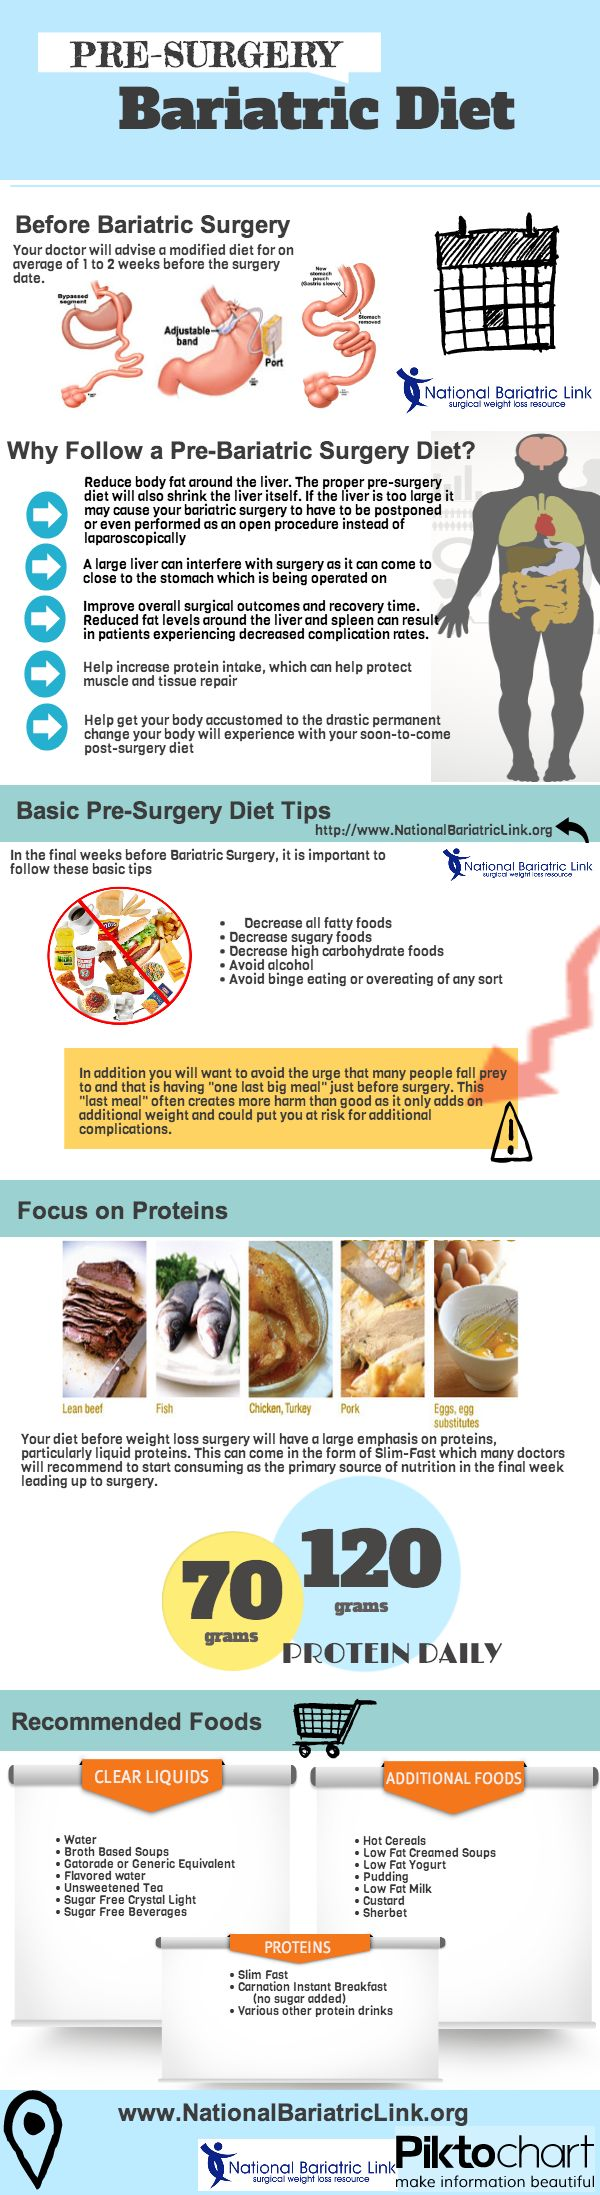 Bariatric Recipes - National Bariatric Link Blog: Gastric Bypass | Gastric Sleeve | Lap Band Surgery